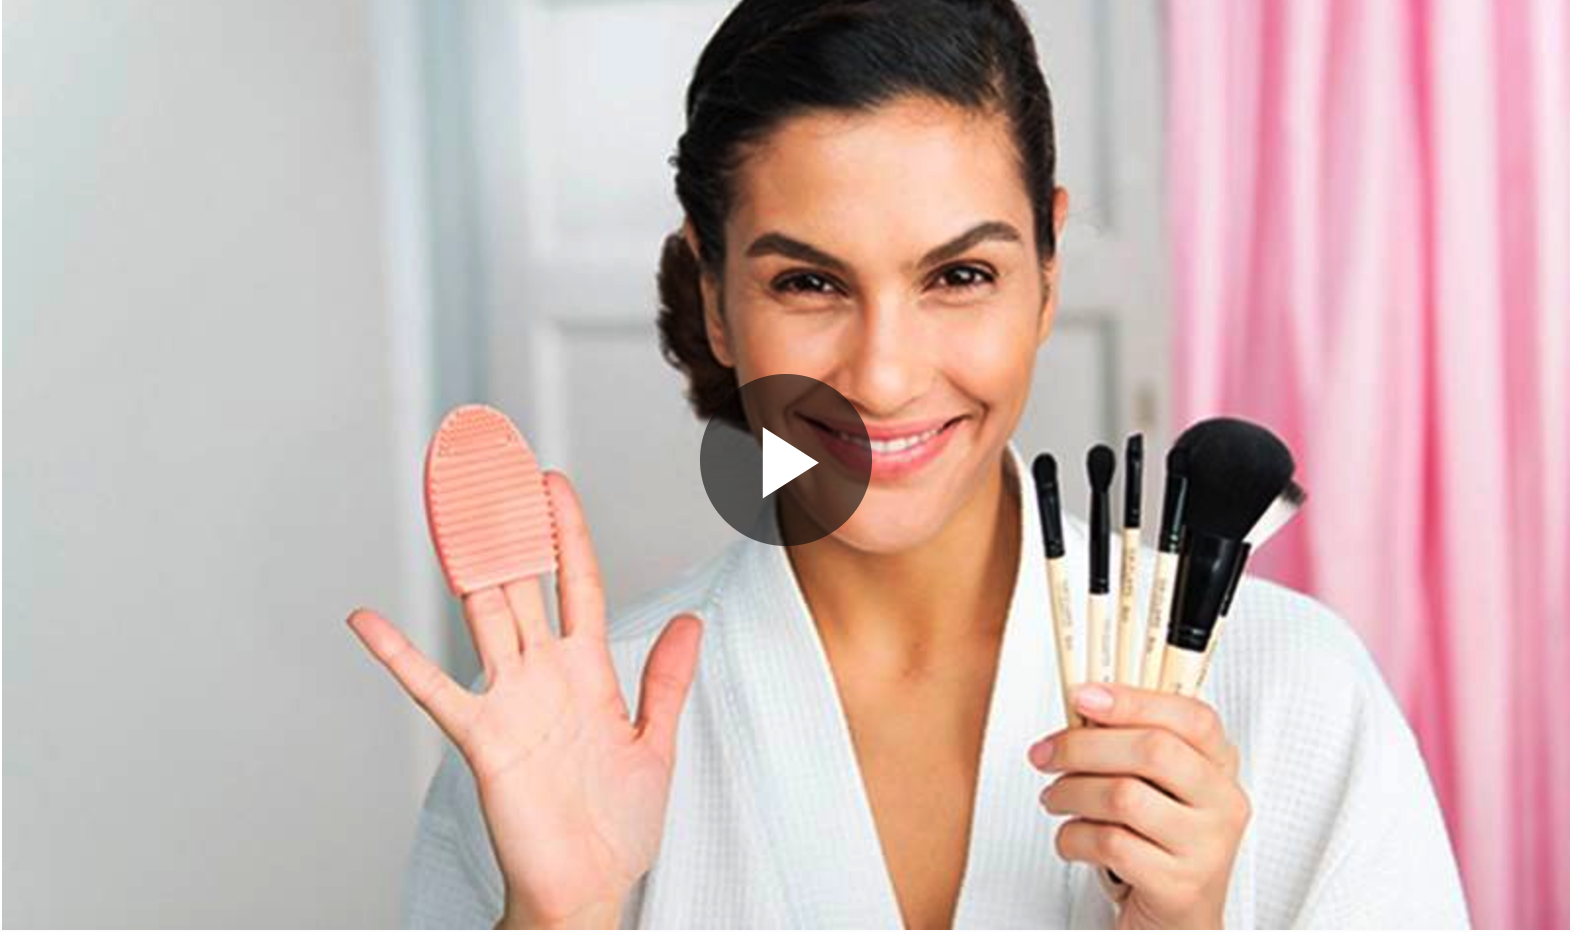 VIDEO TUTORIAL MAKEUP BRUSHES: HOW TO USE THE CLEANING BRUSH FOR BRUSHES